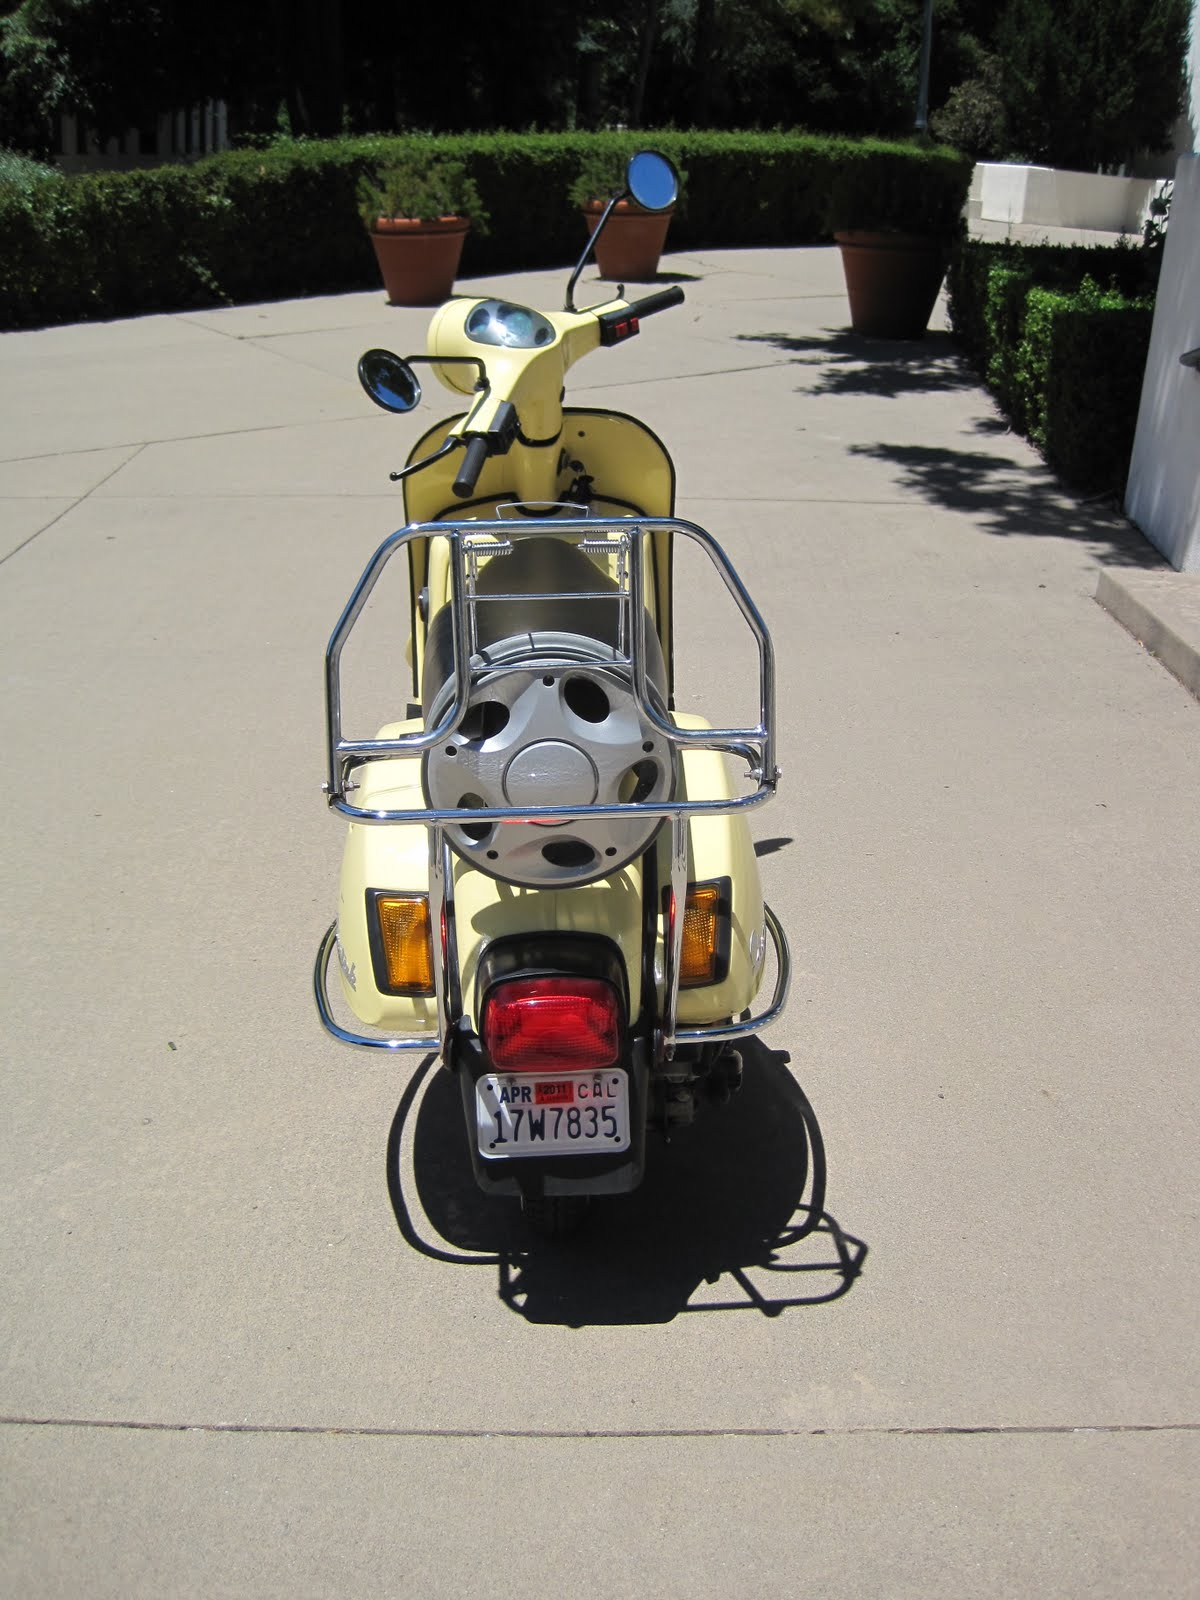 With low-miles/similar condition, Bajaj Chetaks like this sell for around  $1600 without the upgrades. Upgrades and recent tune-up is about $450 plus  $50 for ...